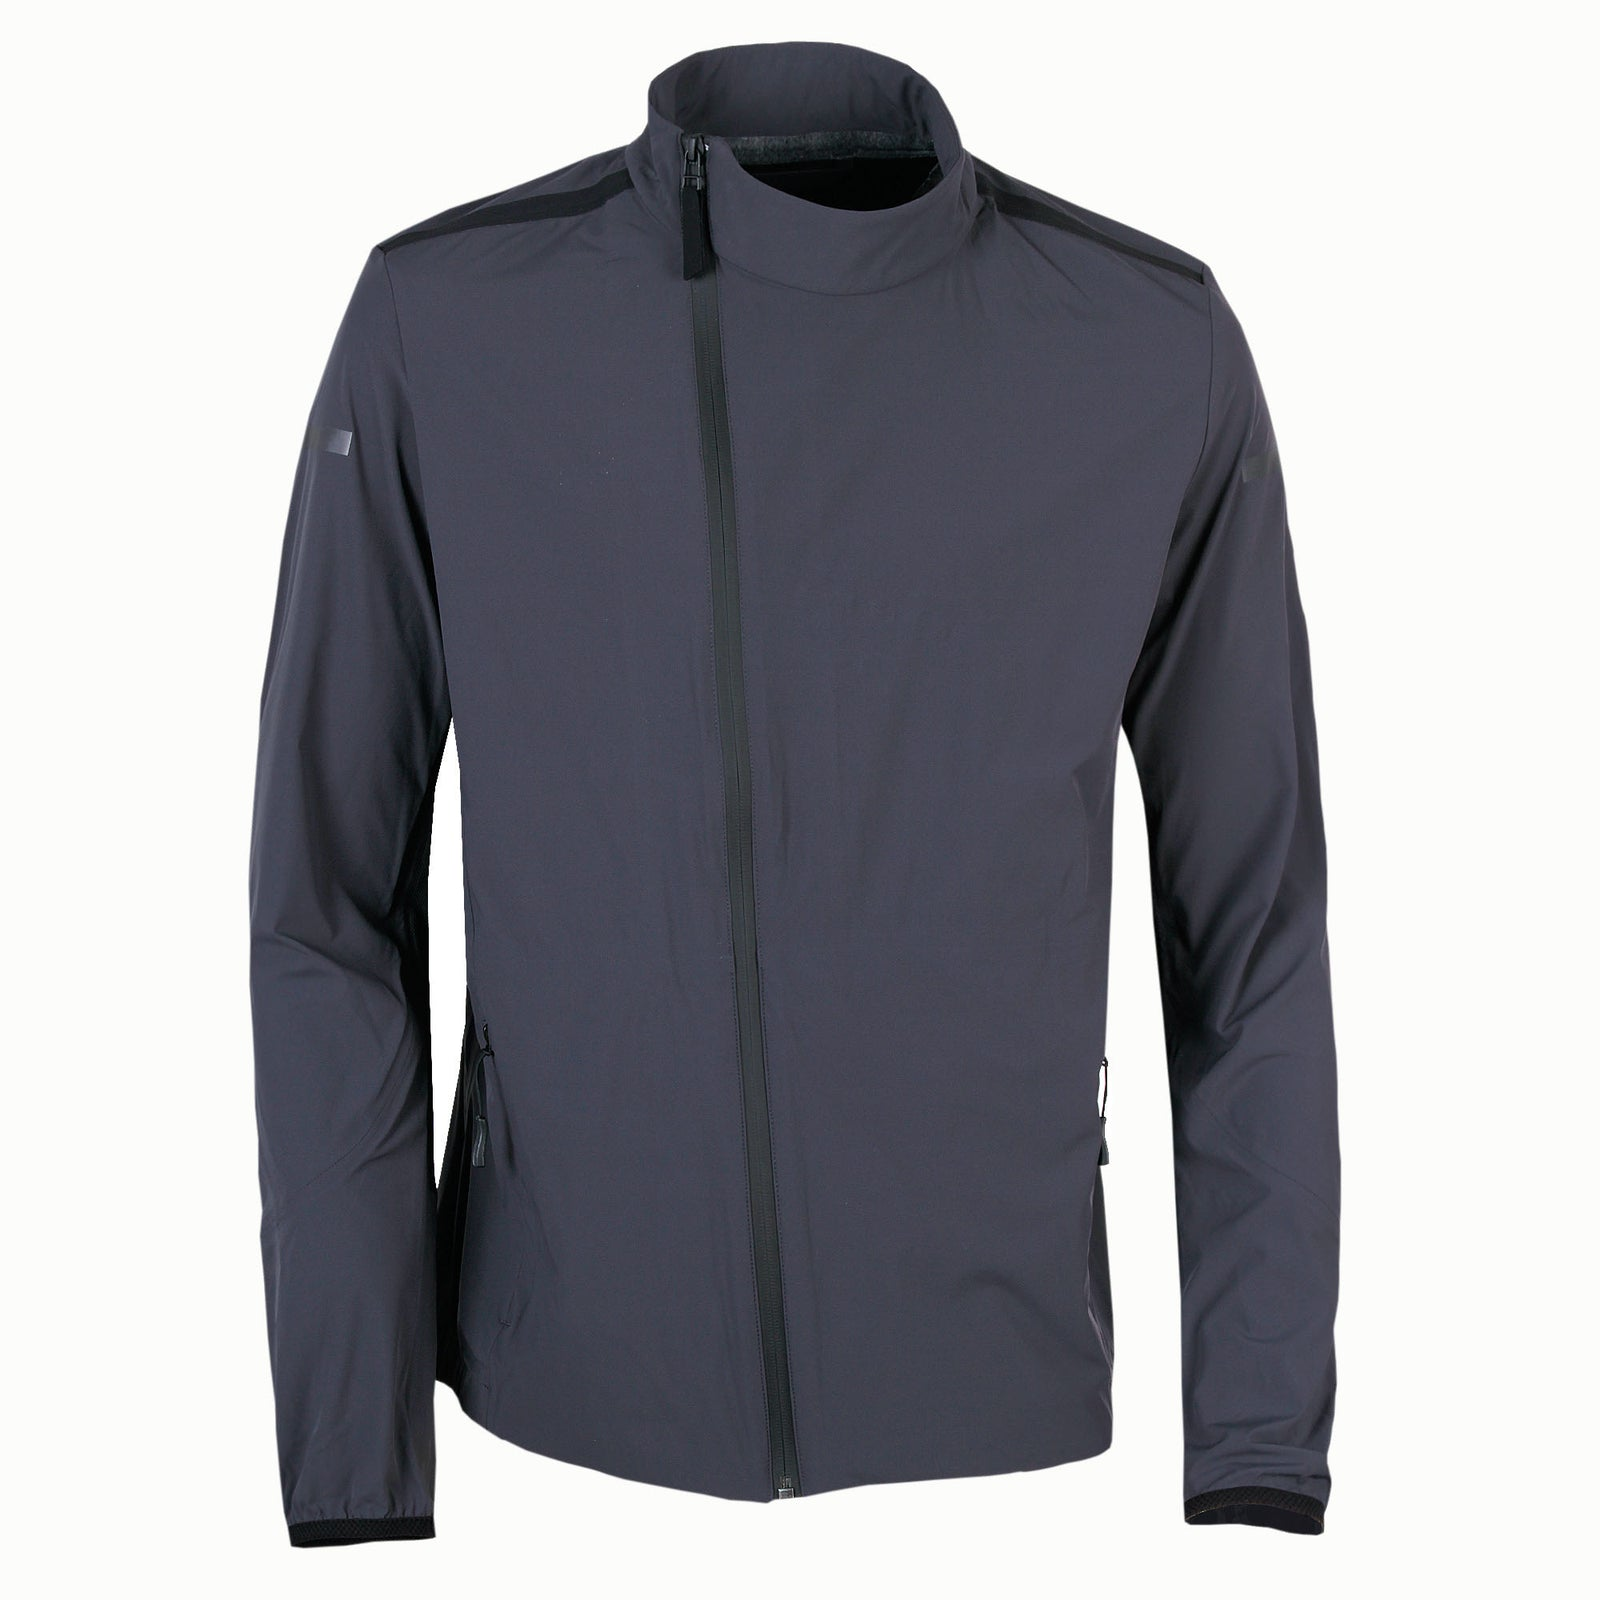 ASYM TRAINING JACKET